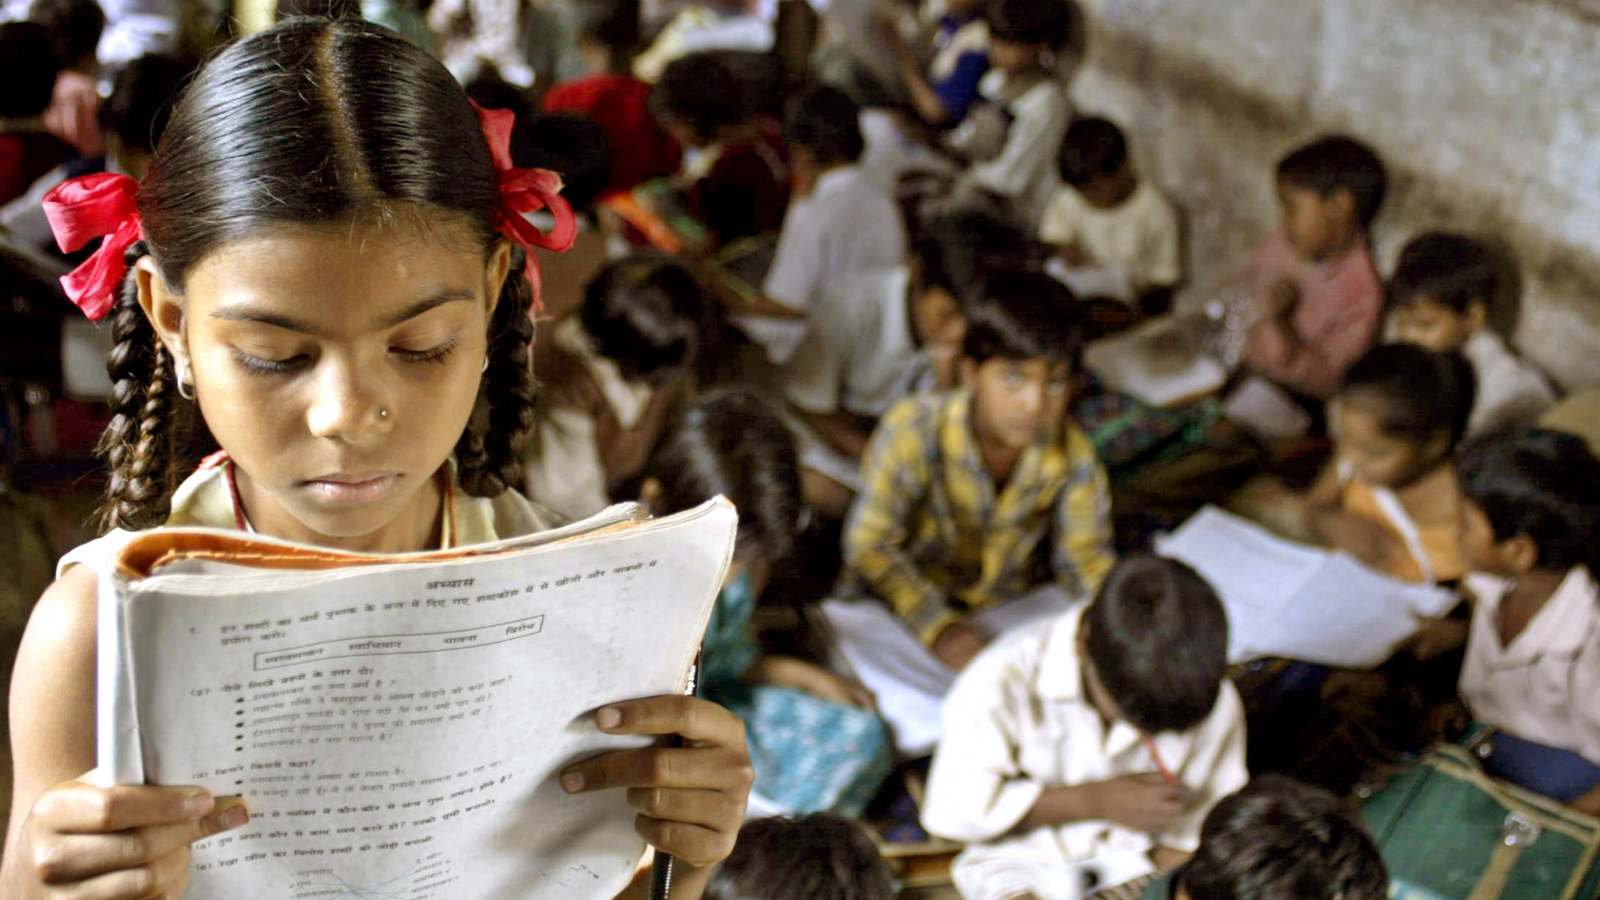 An Indian school girl reads her book inside her class at a government-run school in village Kurana on the outskirts of the Indian central city of Bhopal in this picture taken on August 24, 2004. Although India has some of the best engineering and medical schools in the world and also one of the largest pools of scientists, nearly 40 percent of Indians are still illiterate. Picture taken on August 24, 2004. TO ACCOMPANY FEATURE INDIA-EDUCATION REUTERS/Raj Patidar AH/CP